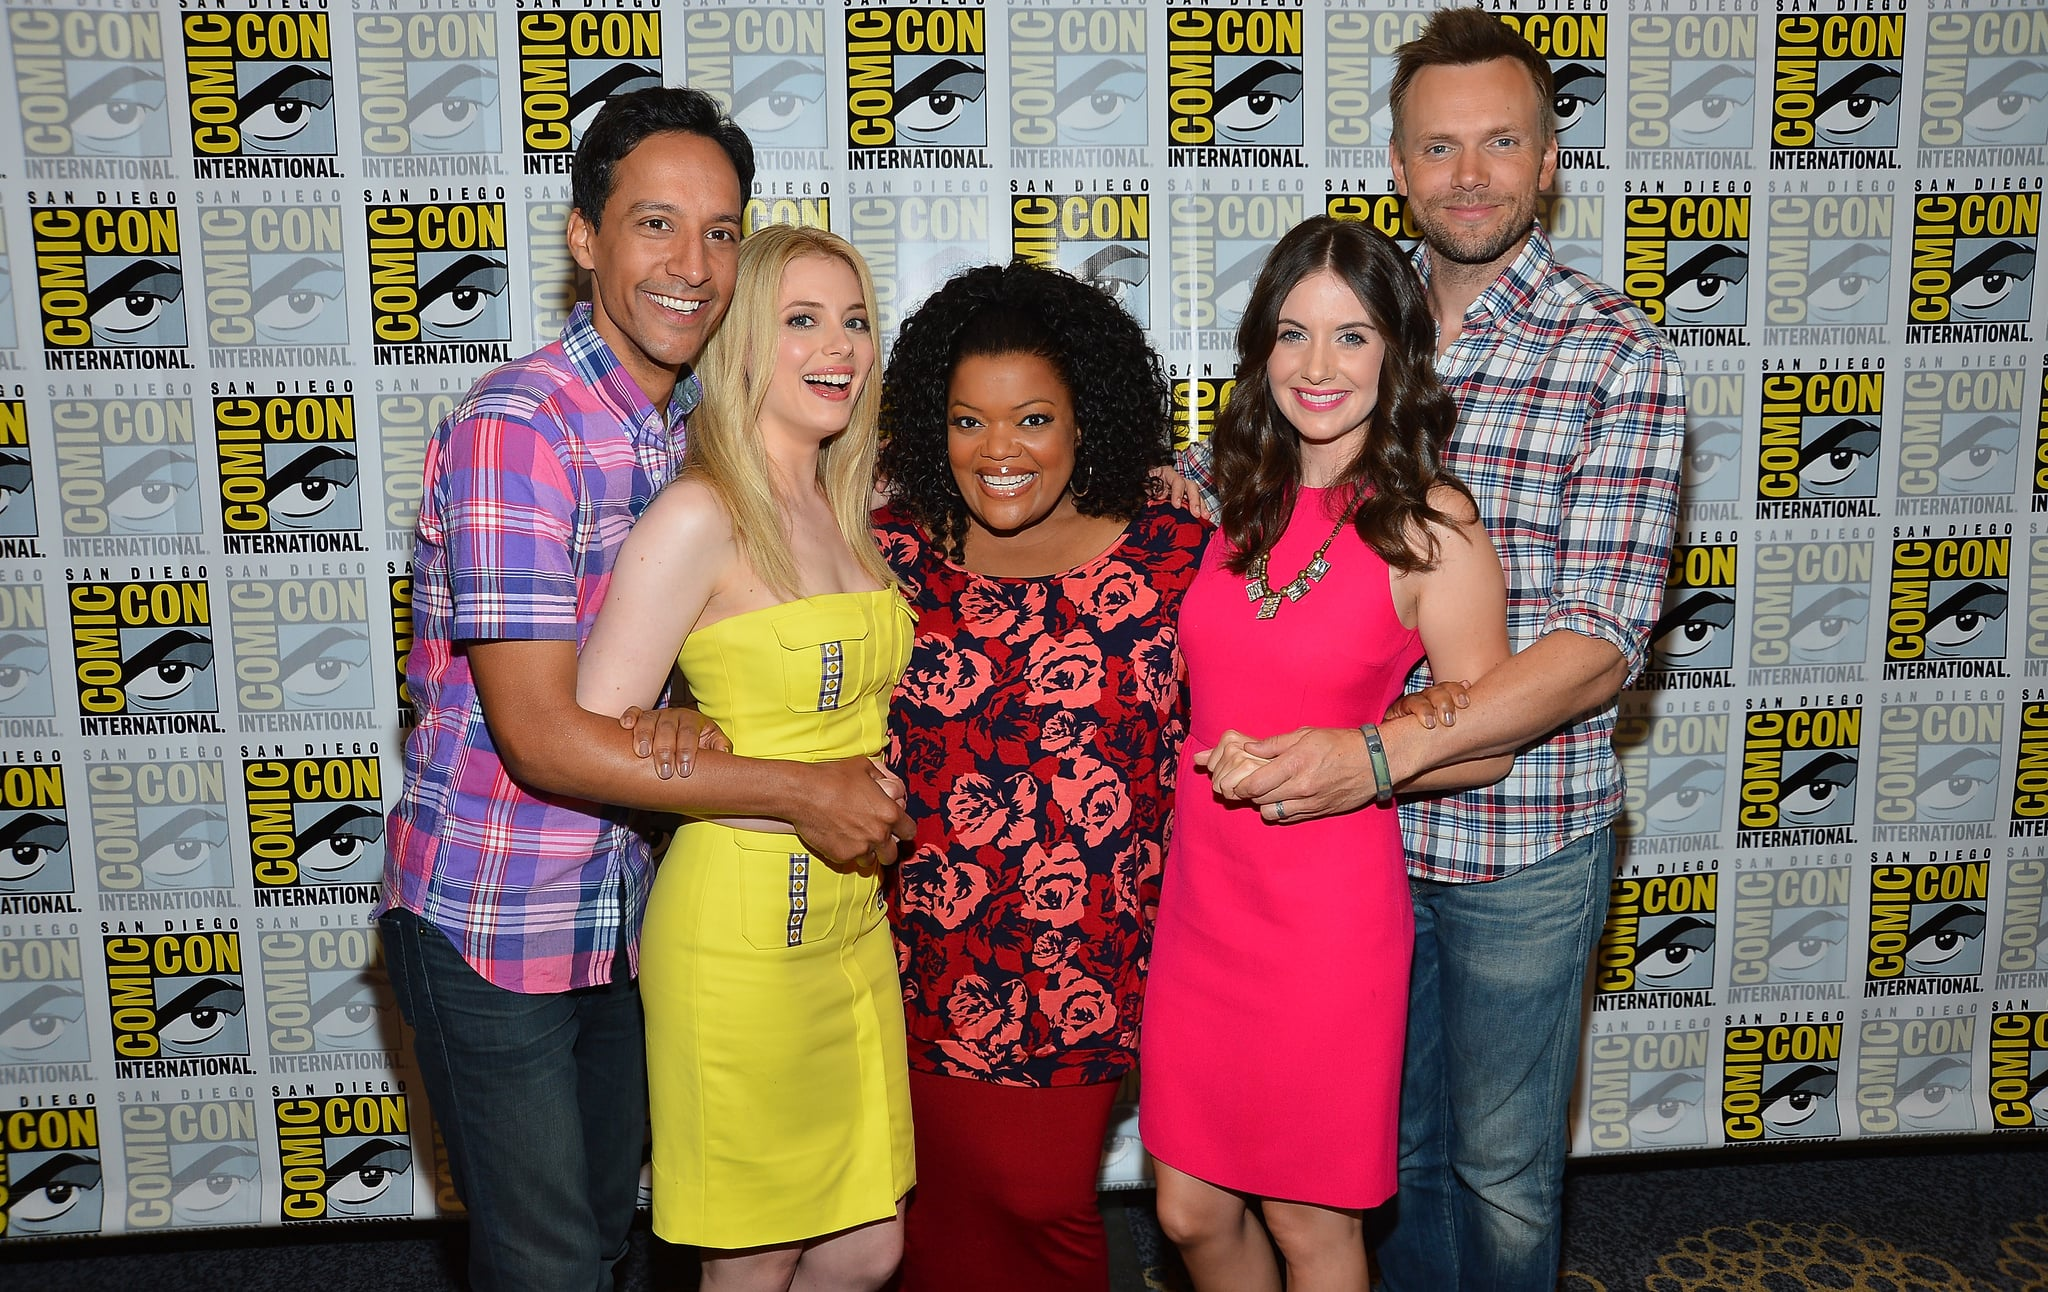 The cast of Community showed off their best prom pose on the red carpet in 2012.